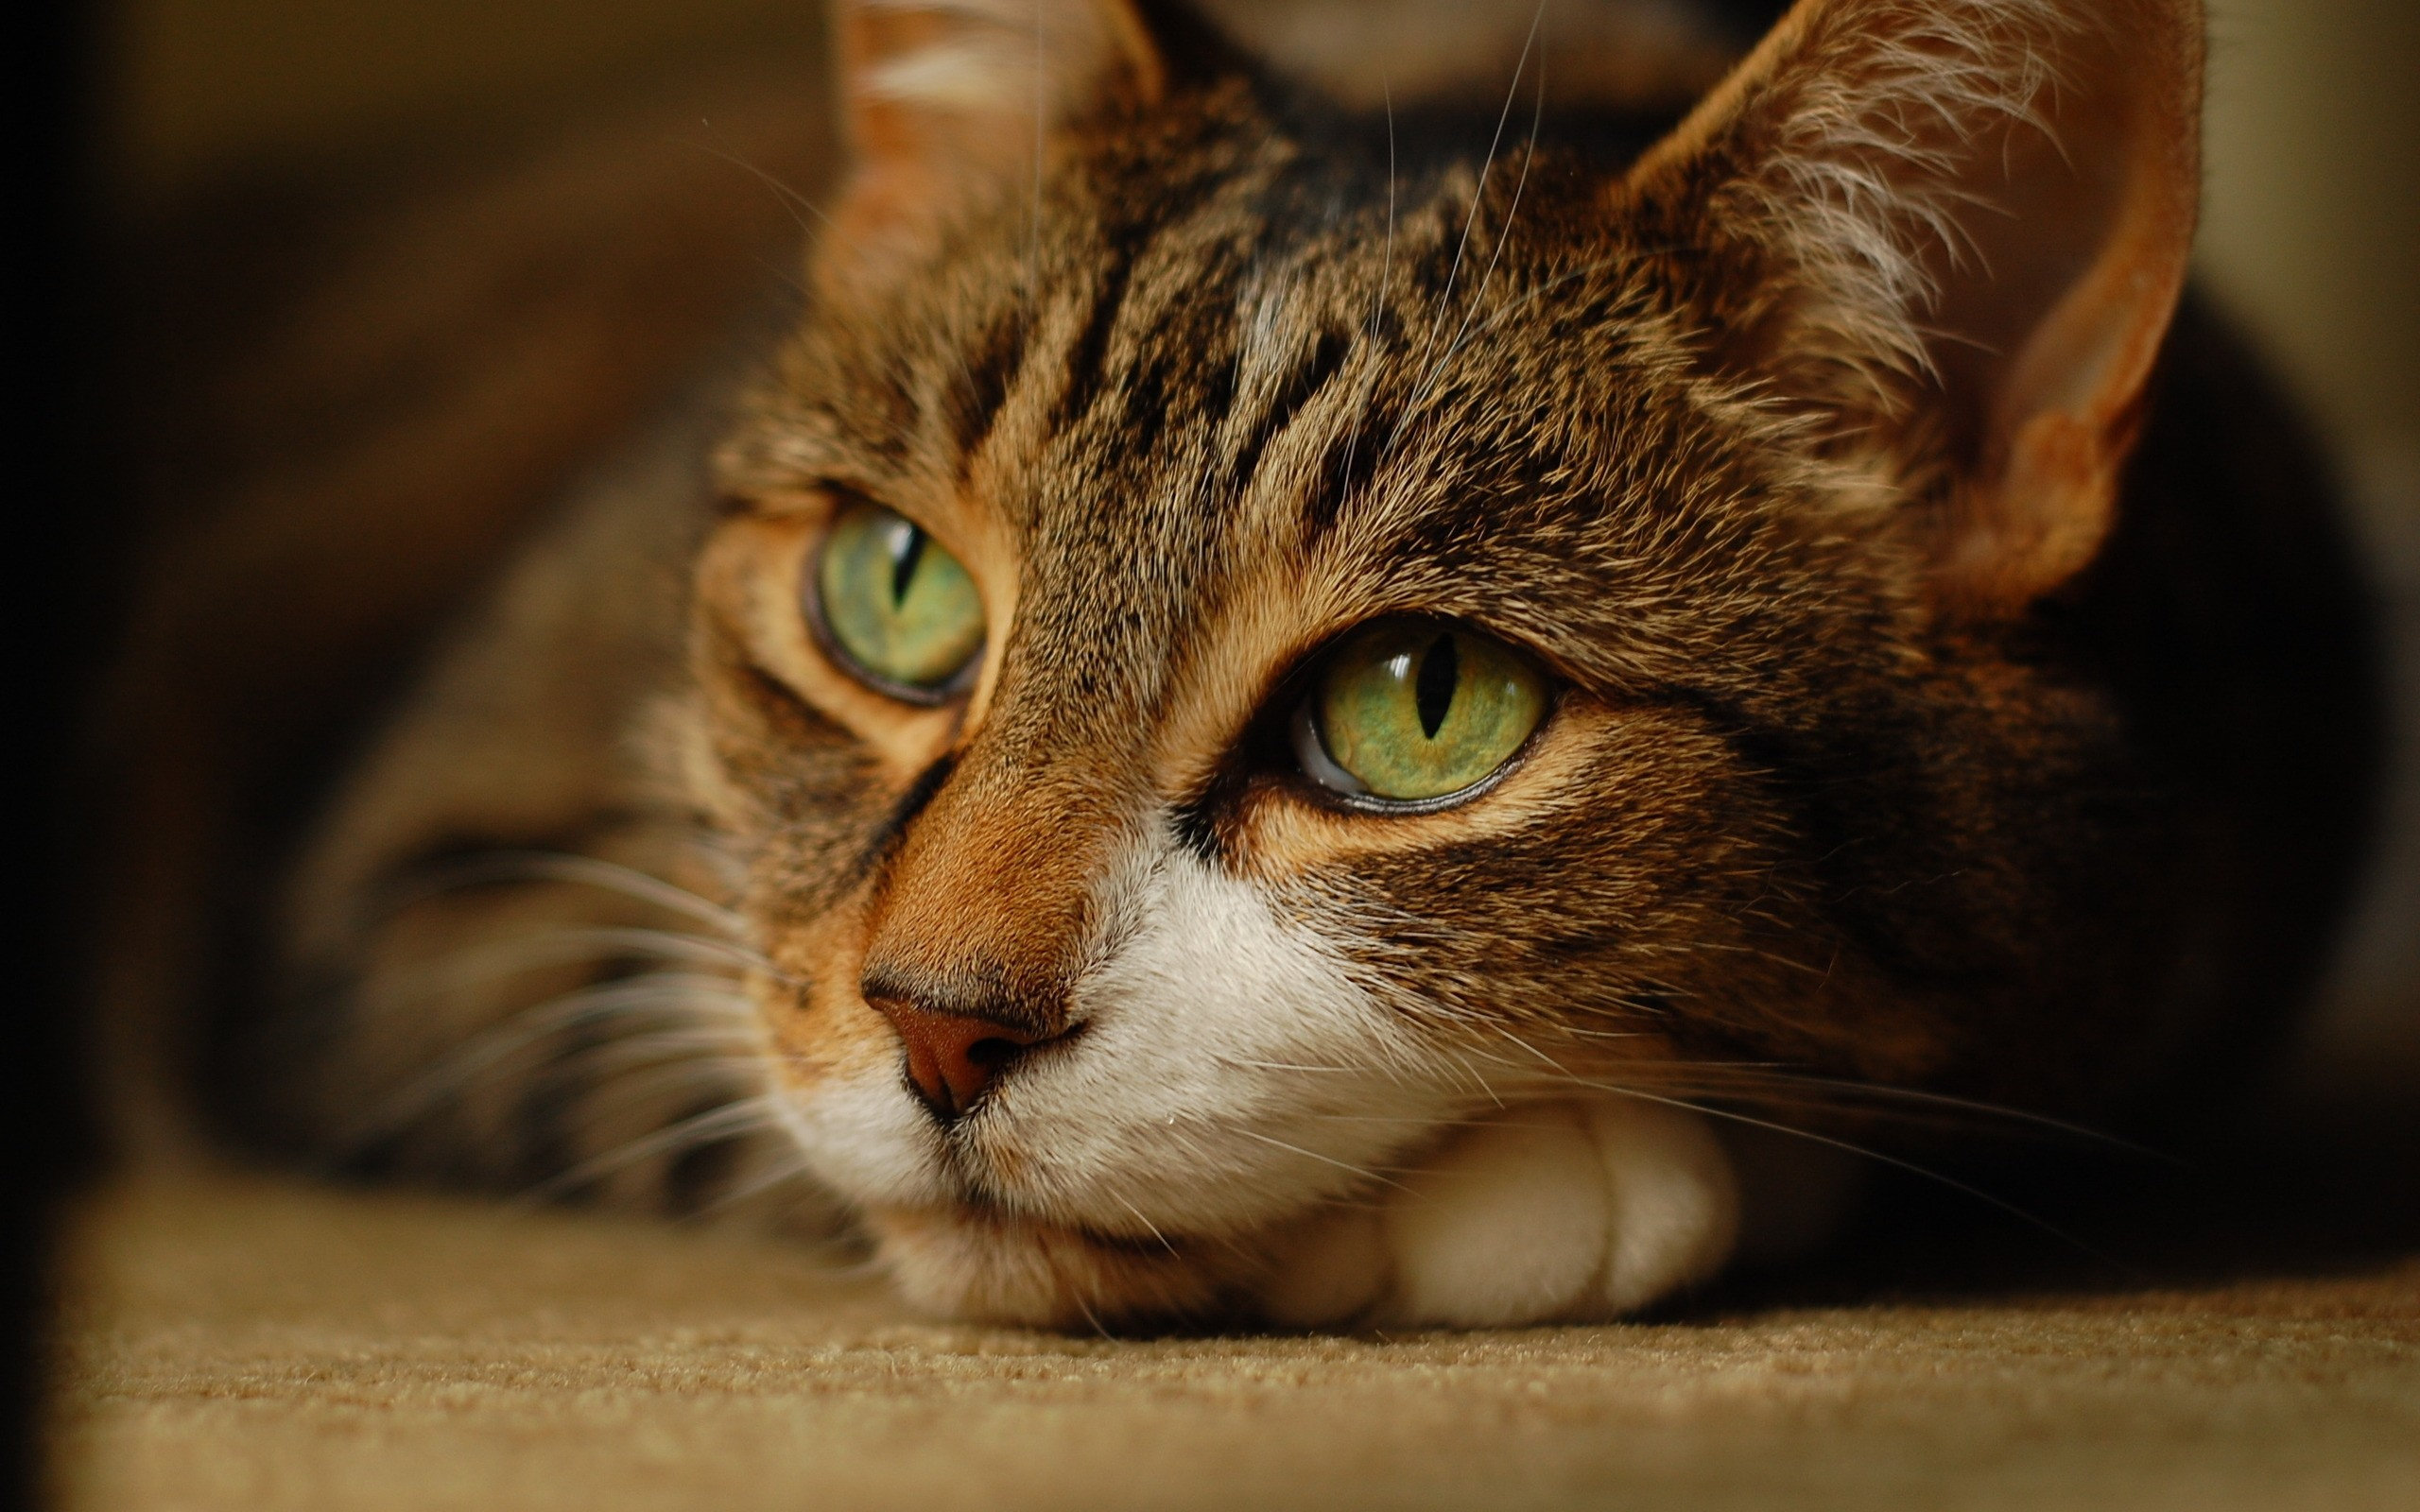 Brown cat with green eyes wallpaper | 2560x1600 | 900 ...